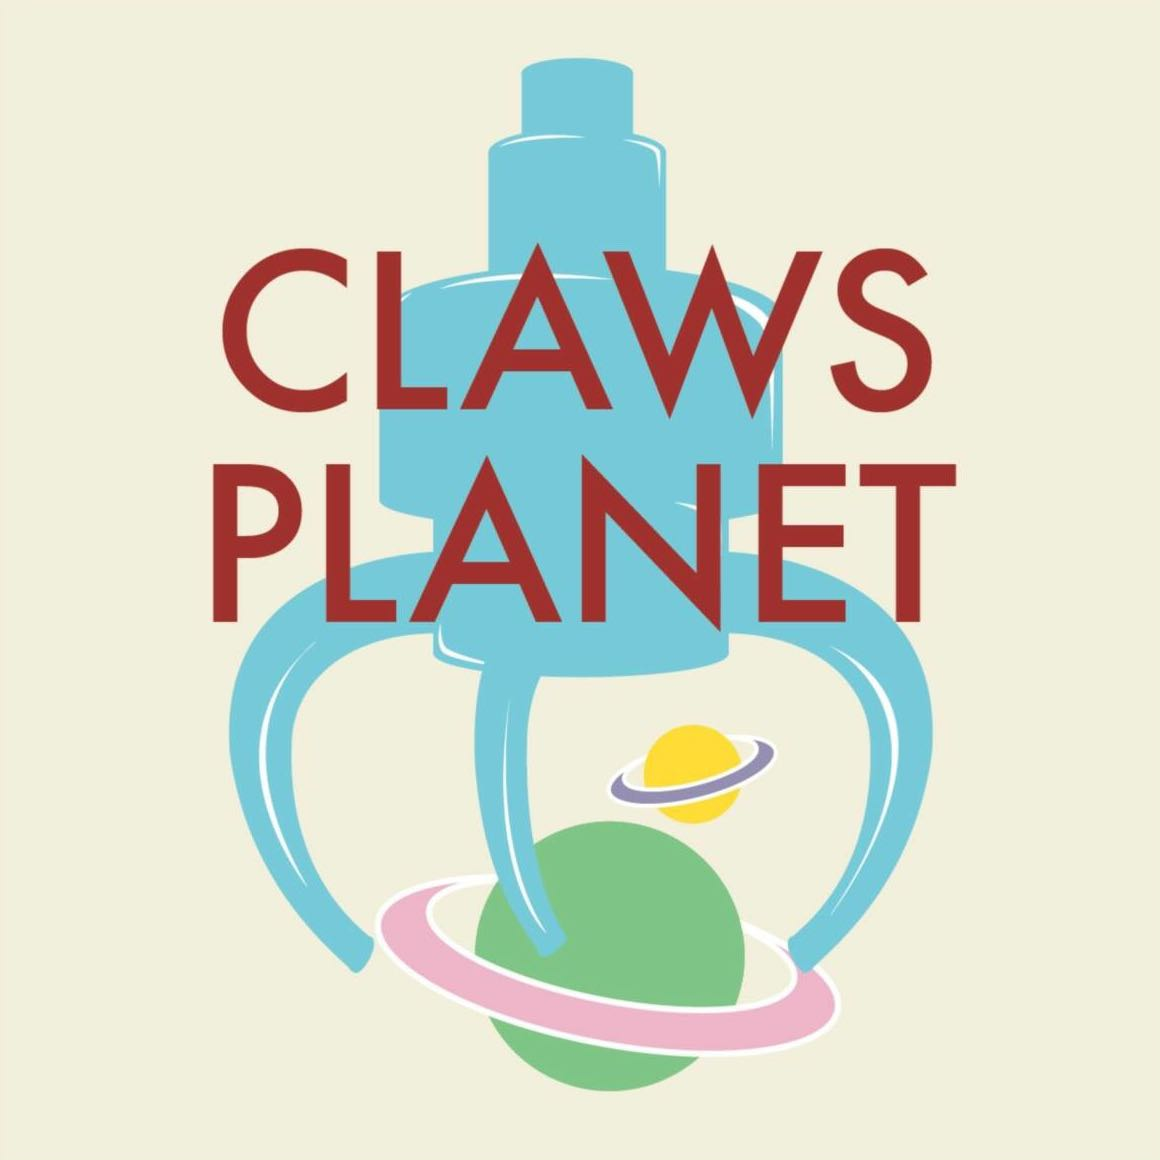 claws_planet